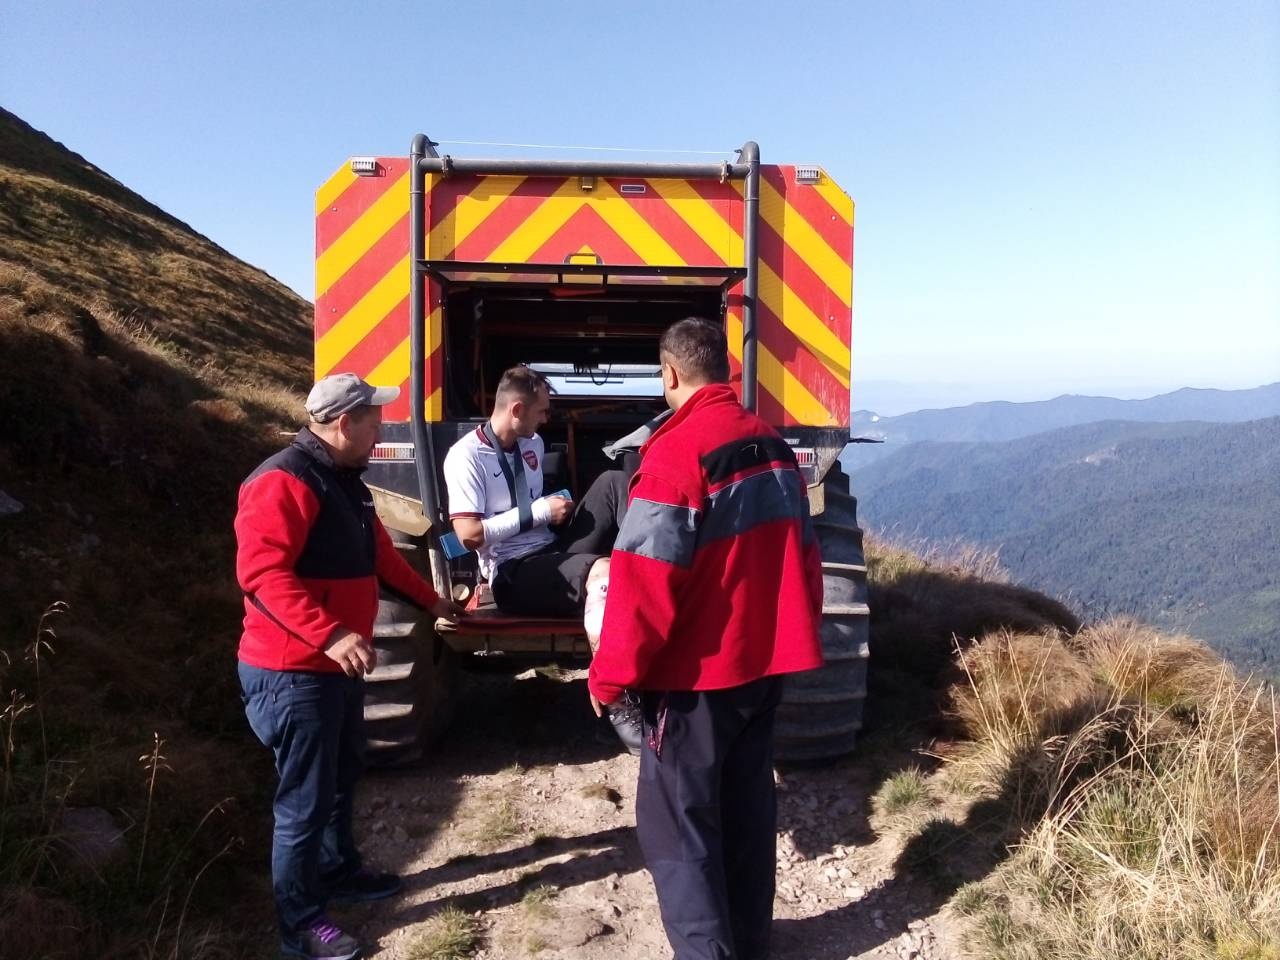 Rescuers and SHERP saved the life in Zakarpattia, Ukraine